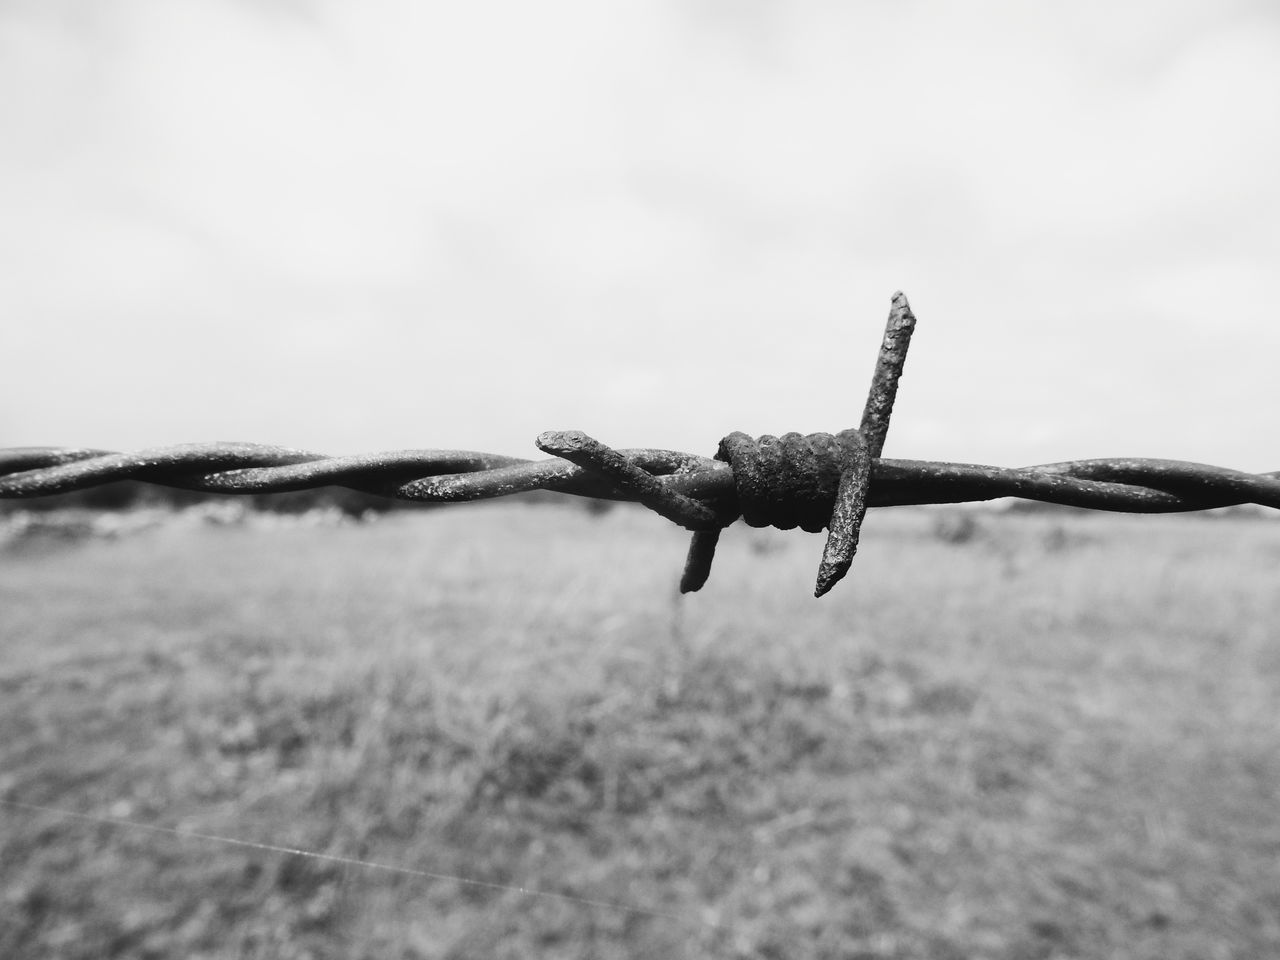 barbed wire against landscape Barbed Wire Barbedwire Barbed Wire Close Up Barbed Barbed World Fench Blackandwhite Black And White Black & White Blackandwhite Photography Monochrome Backgrounds Background Showcase June Fine Art Photography